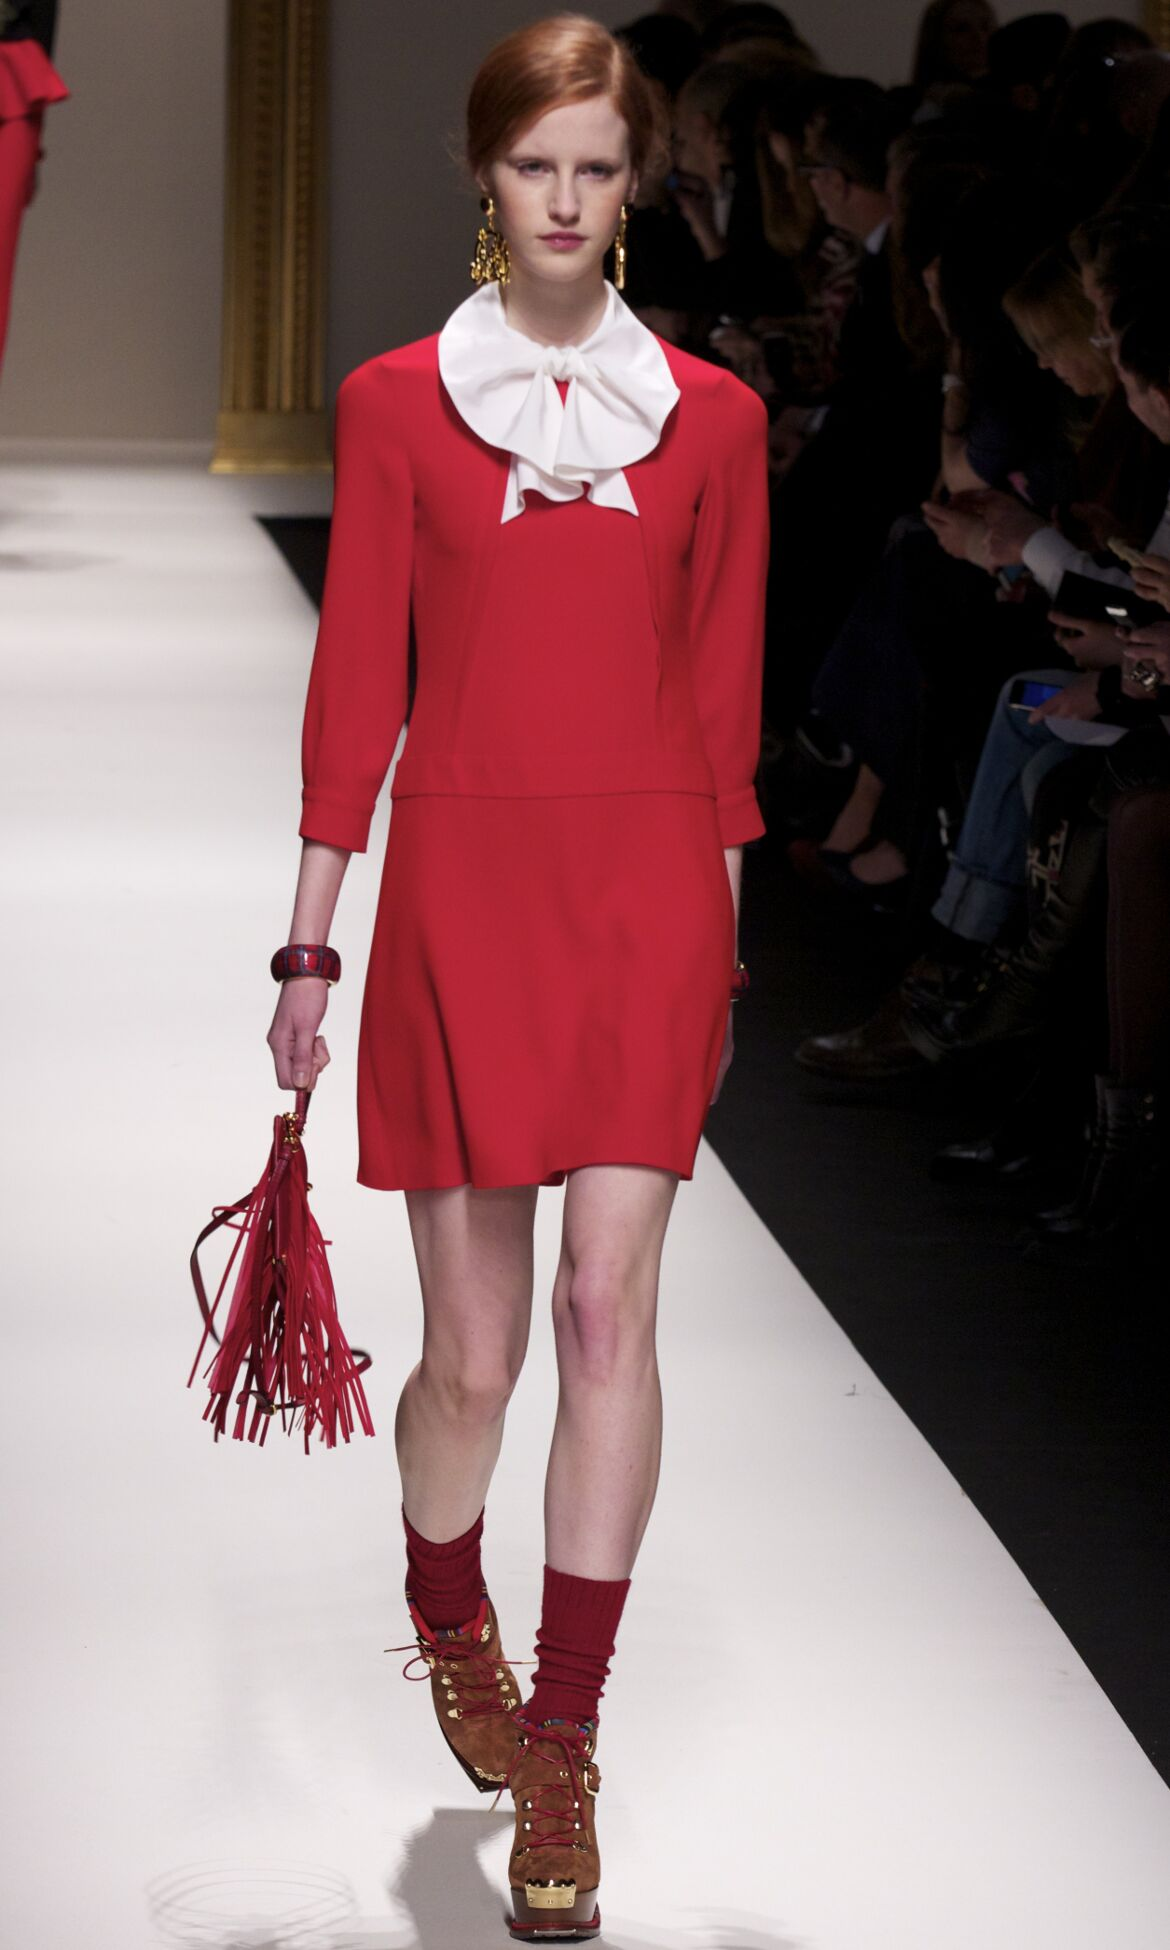 MOSCHINO FALL WINTER 2013-14 WOMEN'S COLLECTION | The Skinny Beep